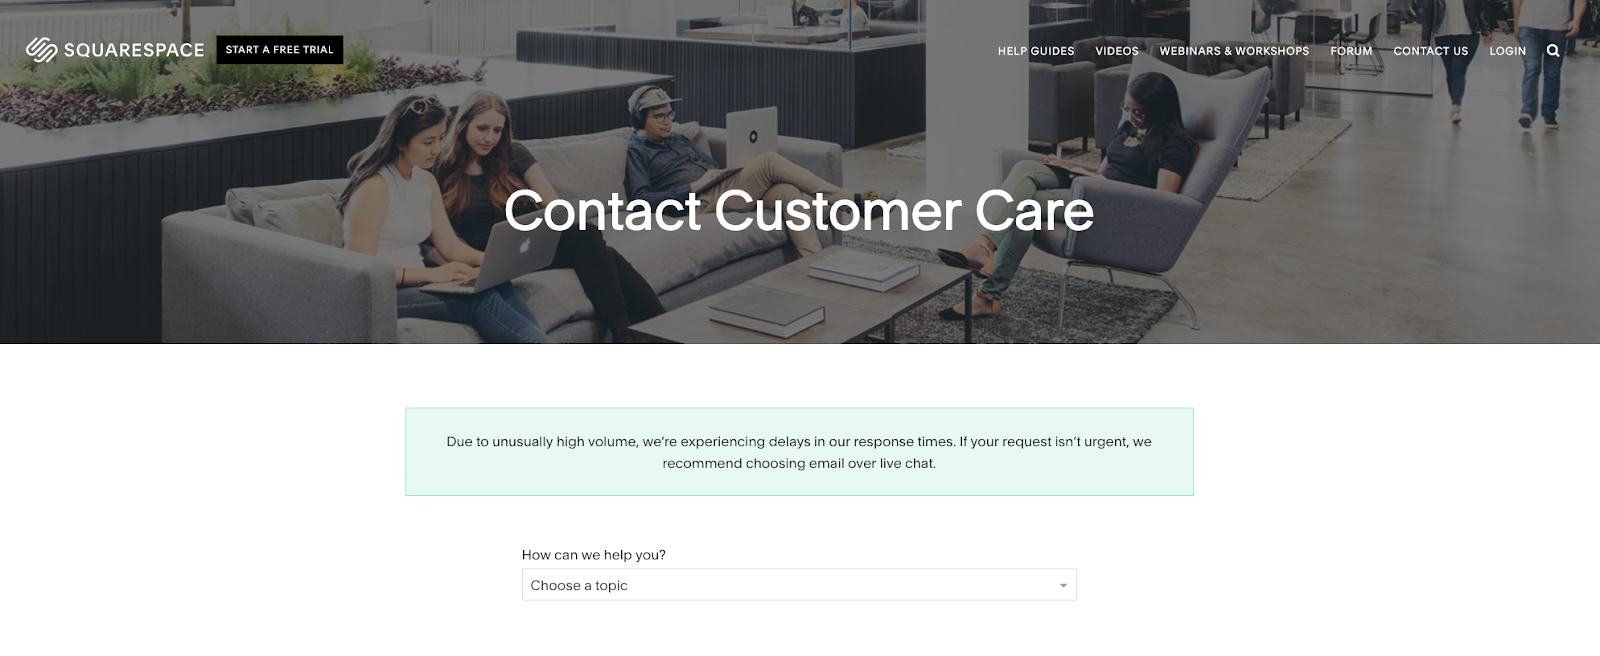 Screenshot of Squarespace contact page